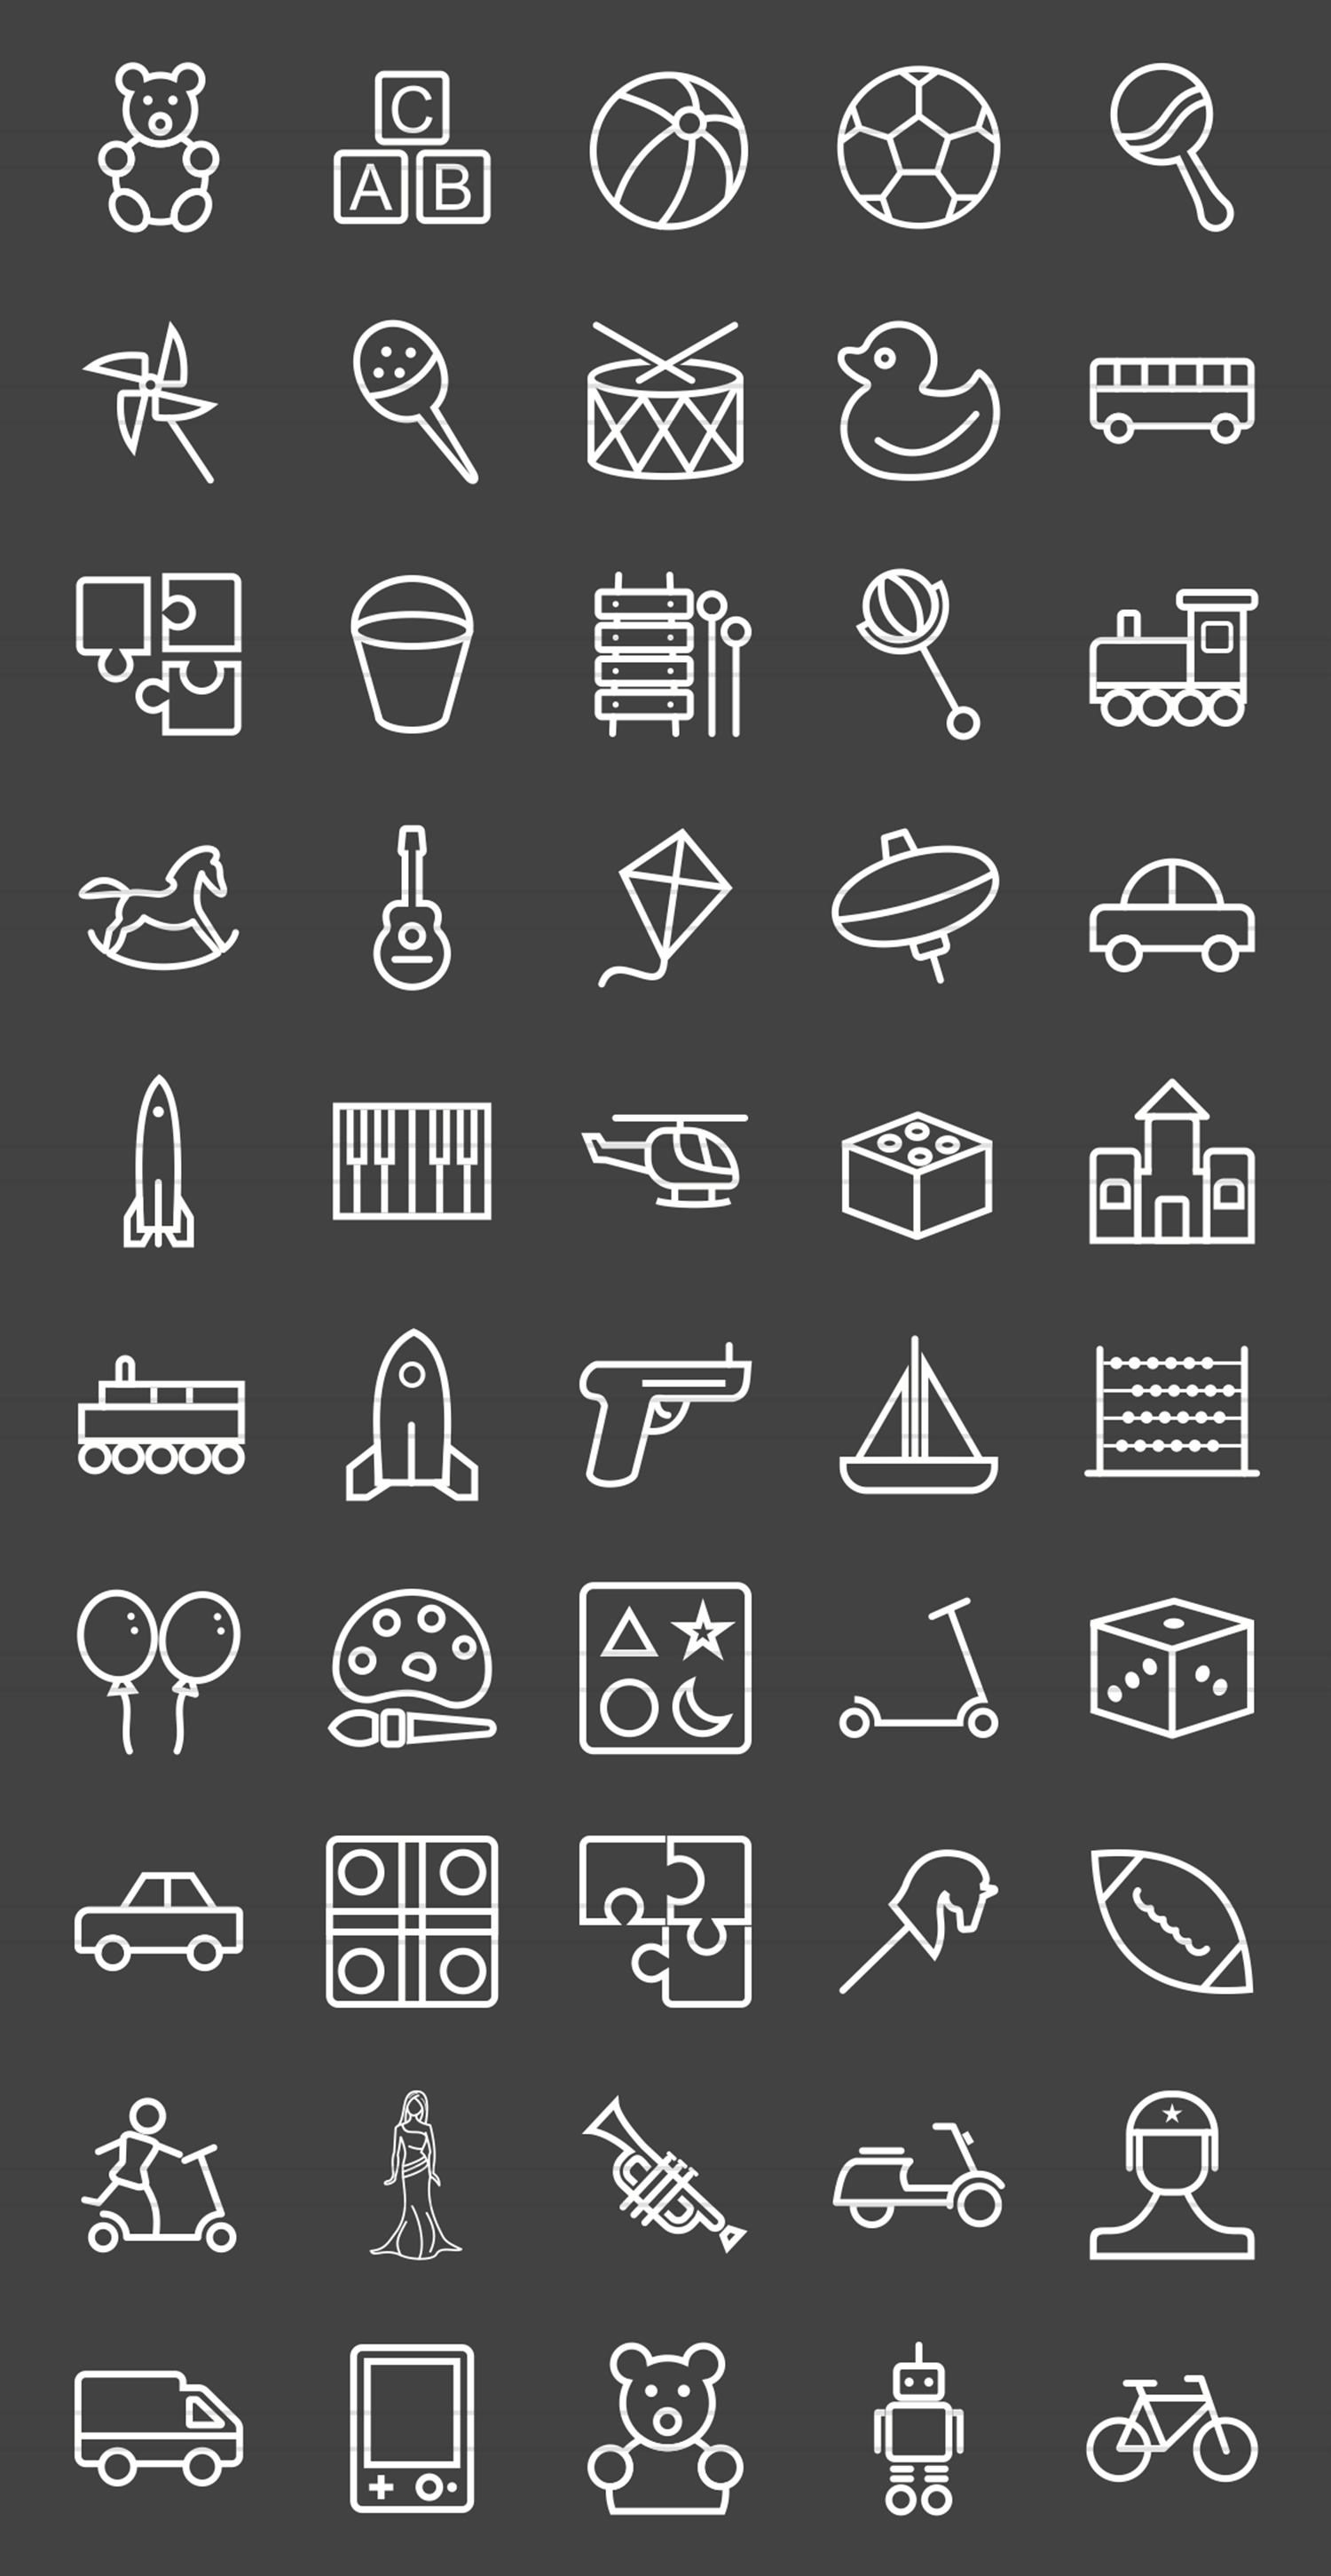 50 Toy Set Line Inverted Icons example image 2